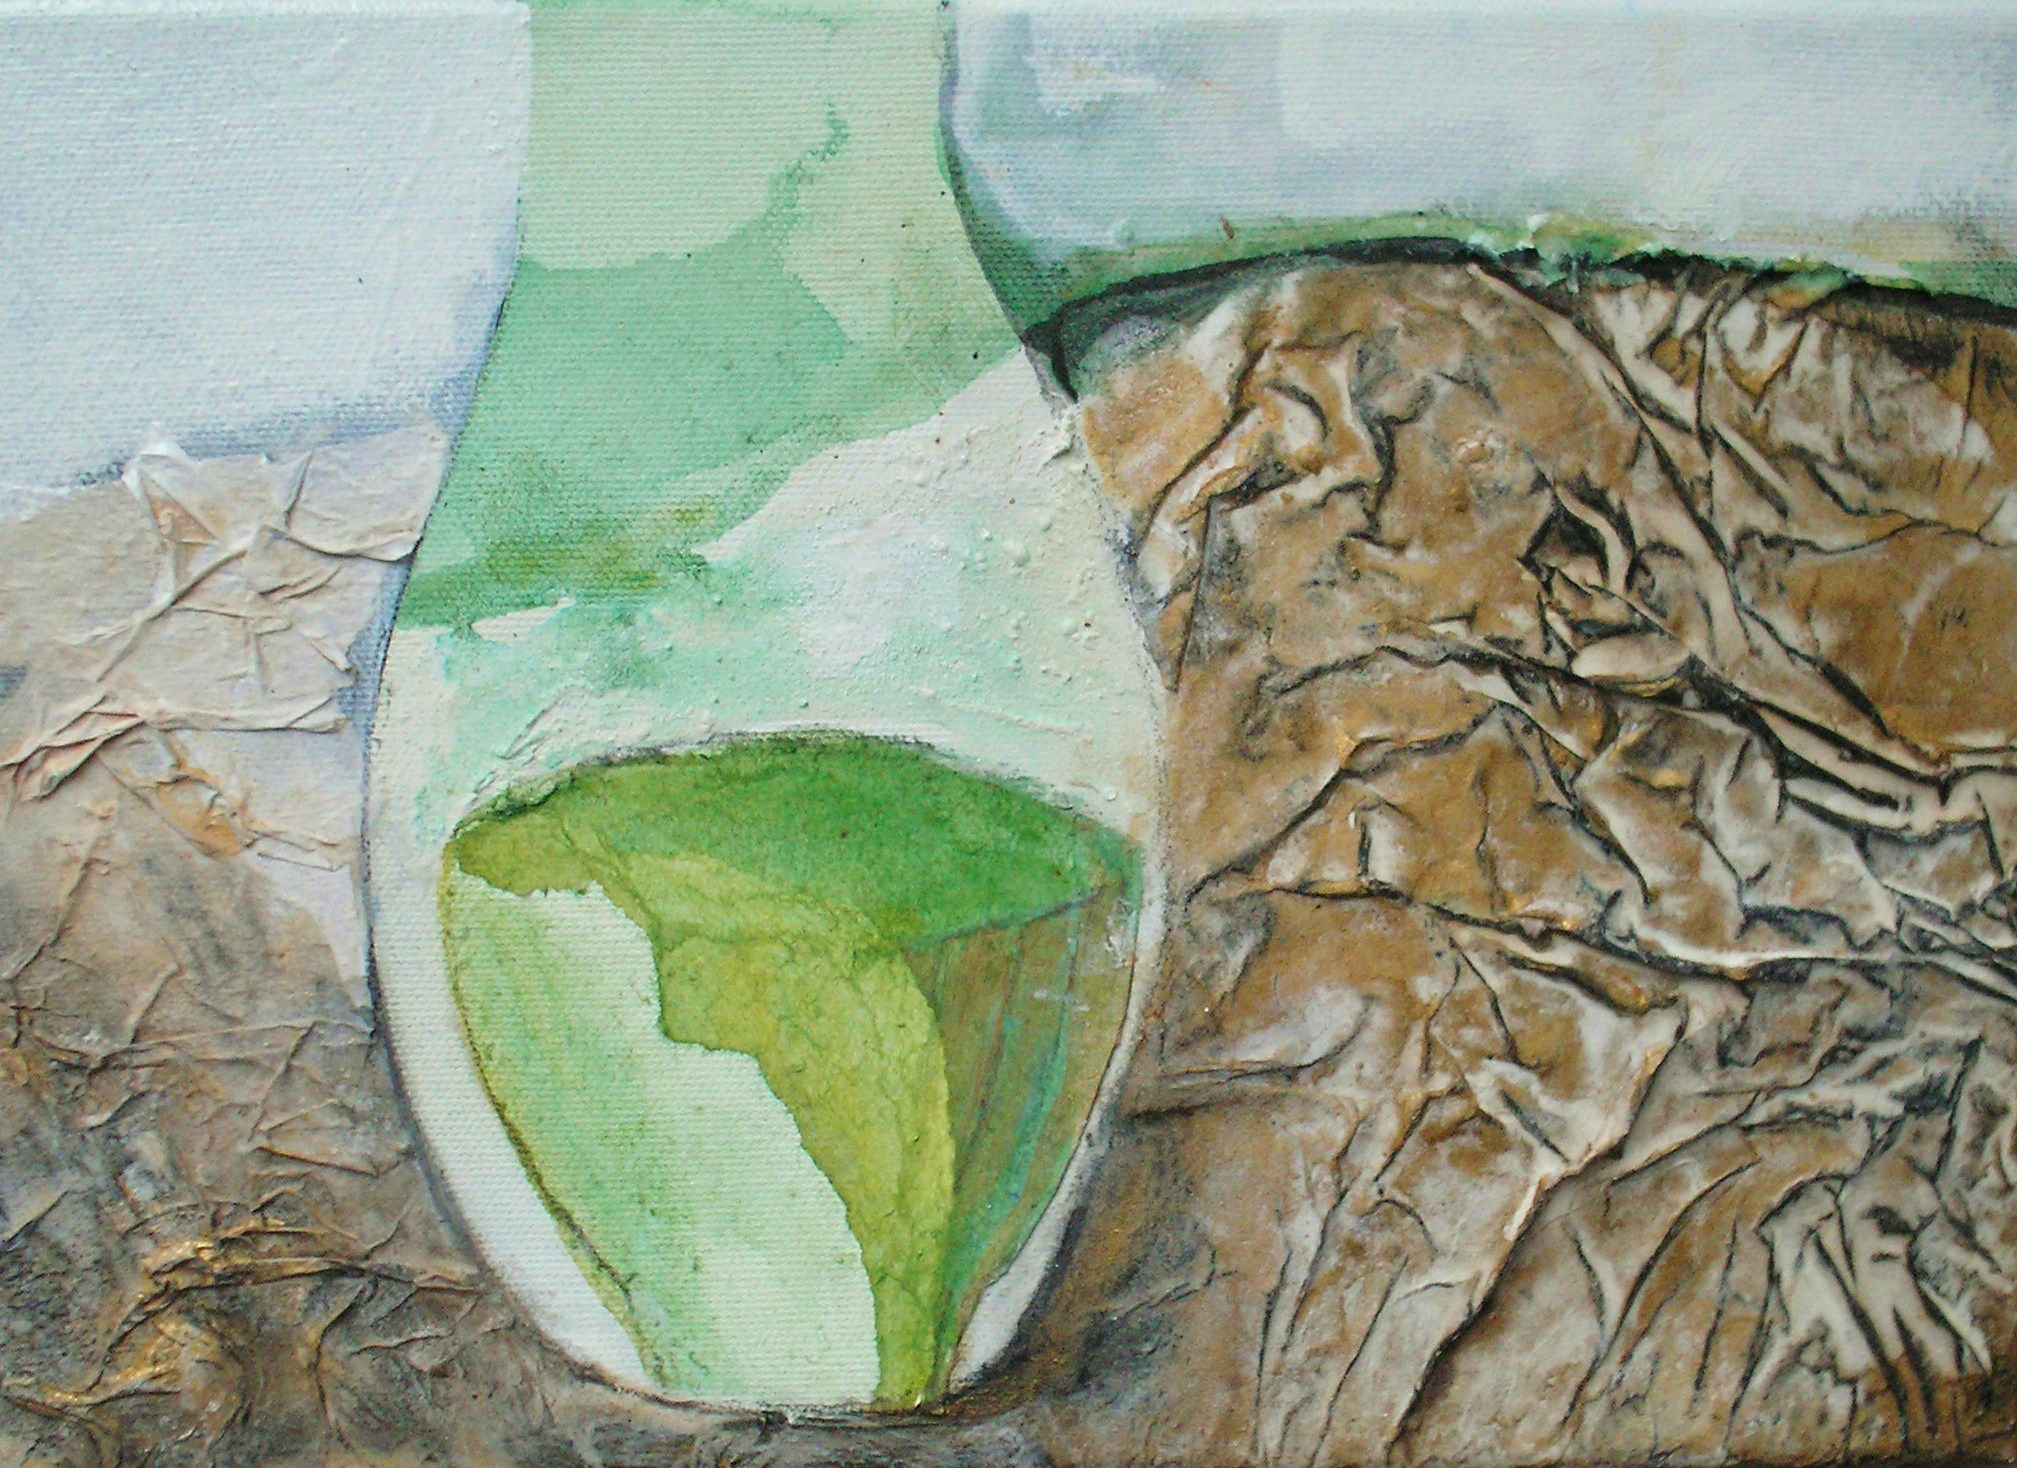 Spring vessel by Gail de Cordova at the Saffron Walden Gallery